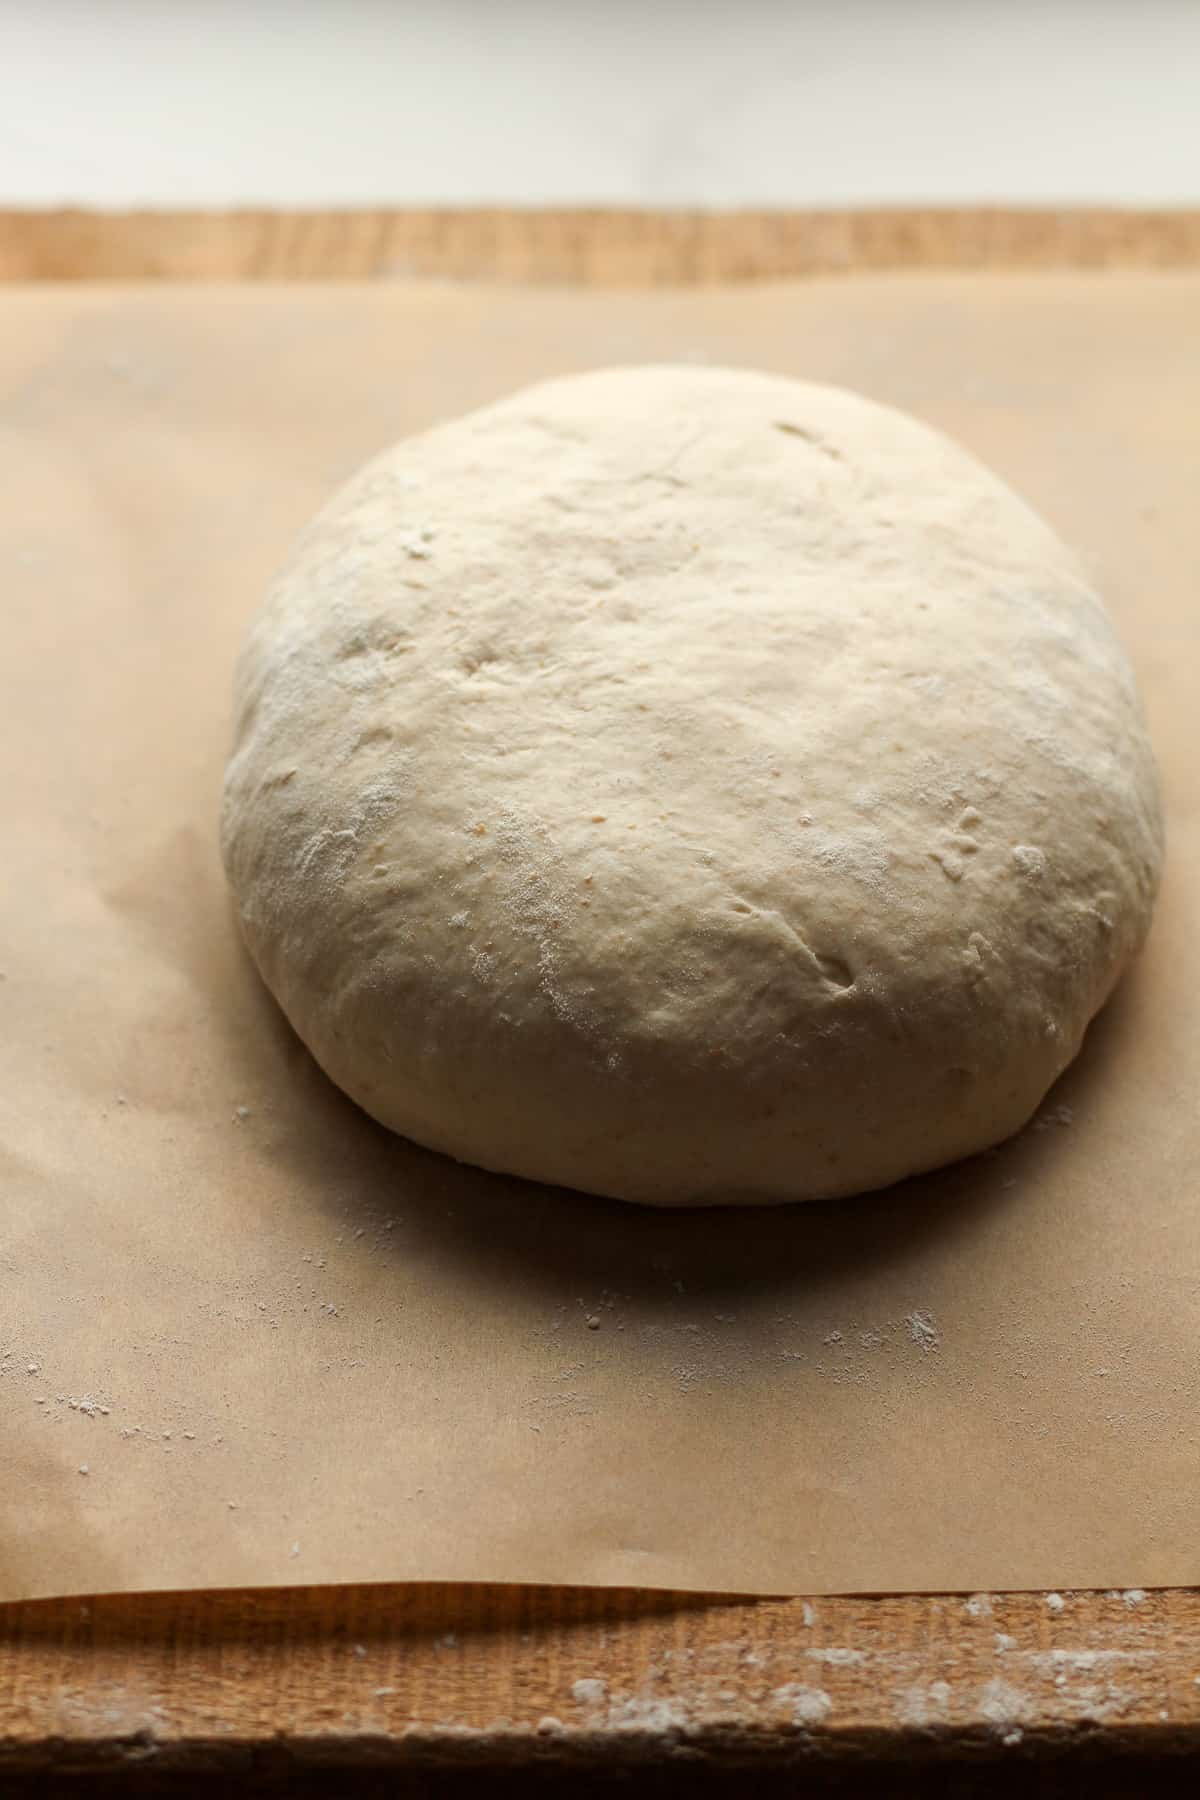 A round of sourdough, from the side.